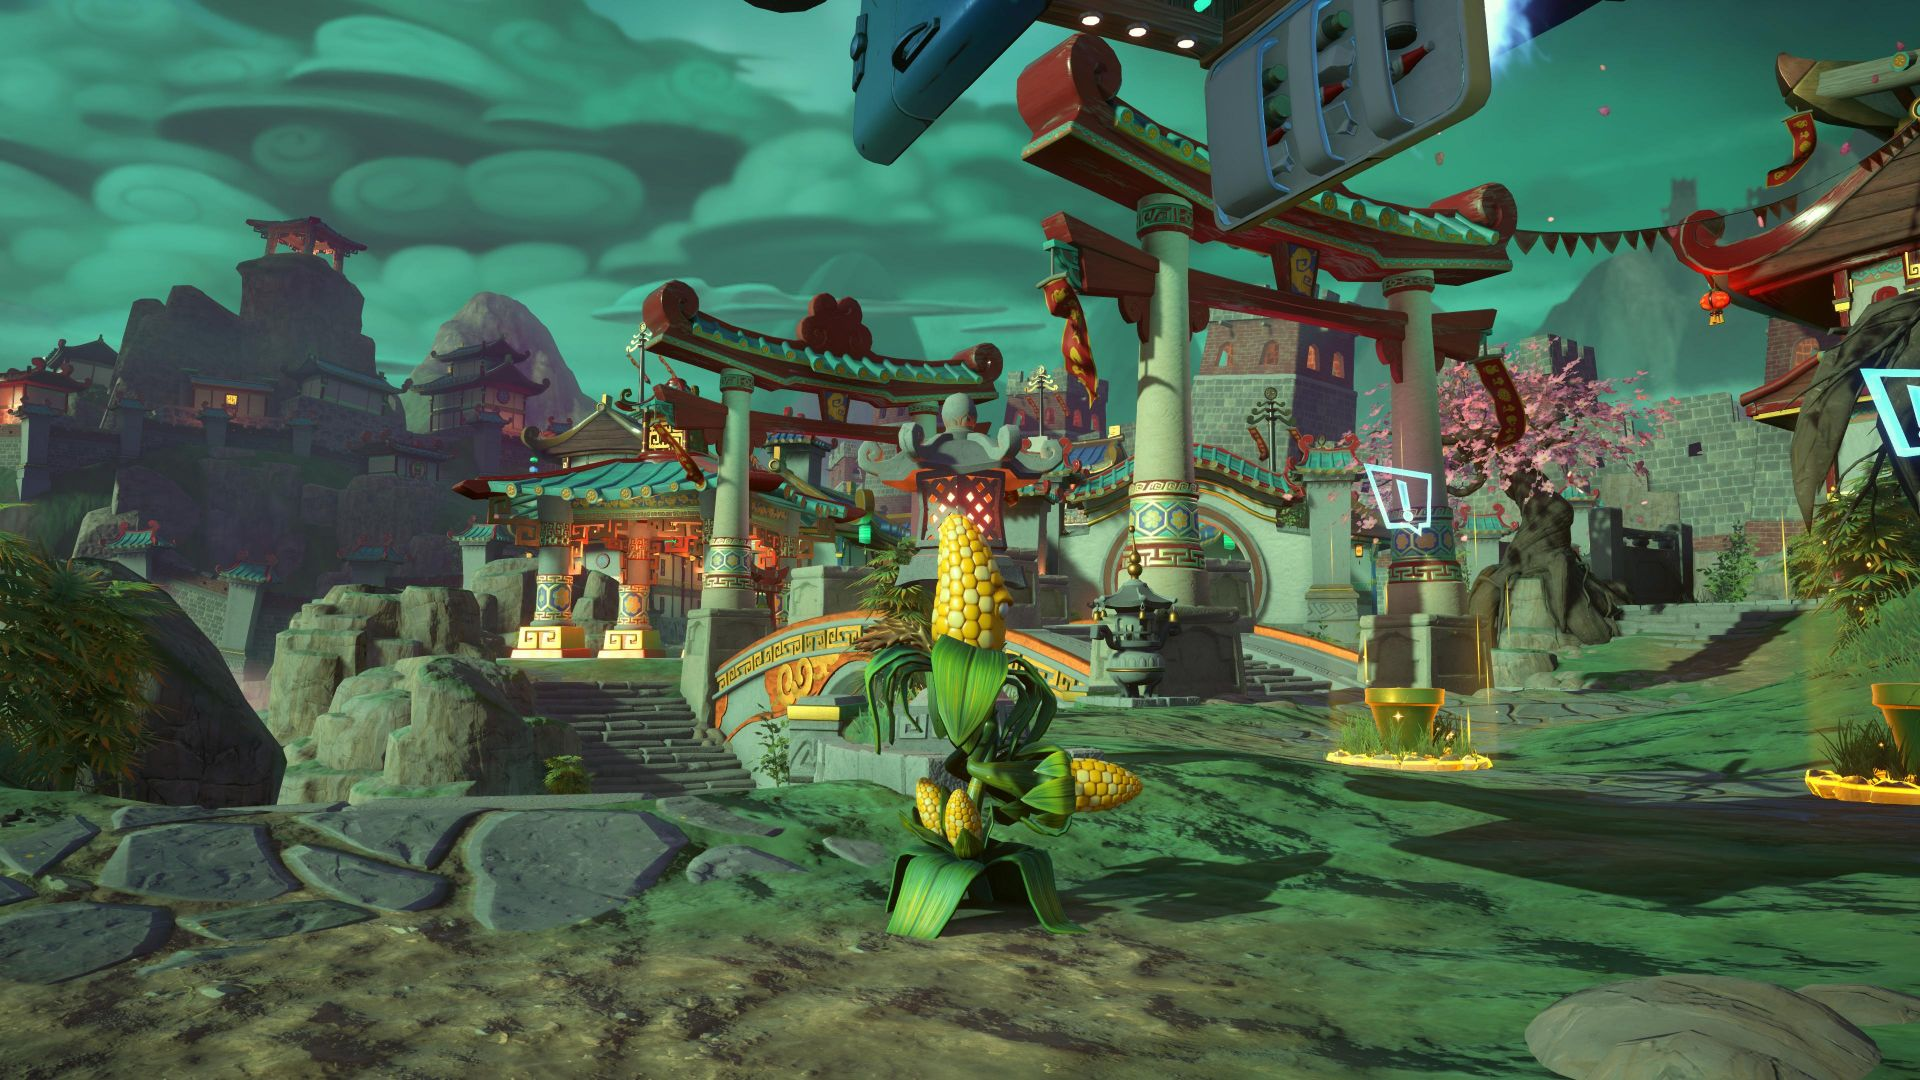 Wallpaper plants vs zombies garden warfare 2 shooter best games pc ps4 xbox one games 9577 for Plants vs zombies garden warfare 2 xbox 1